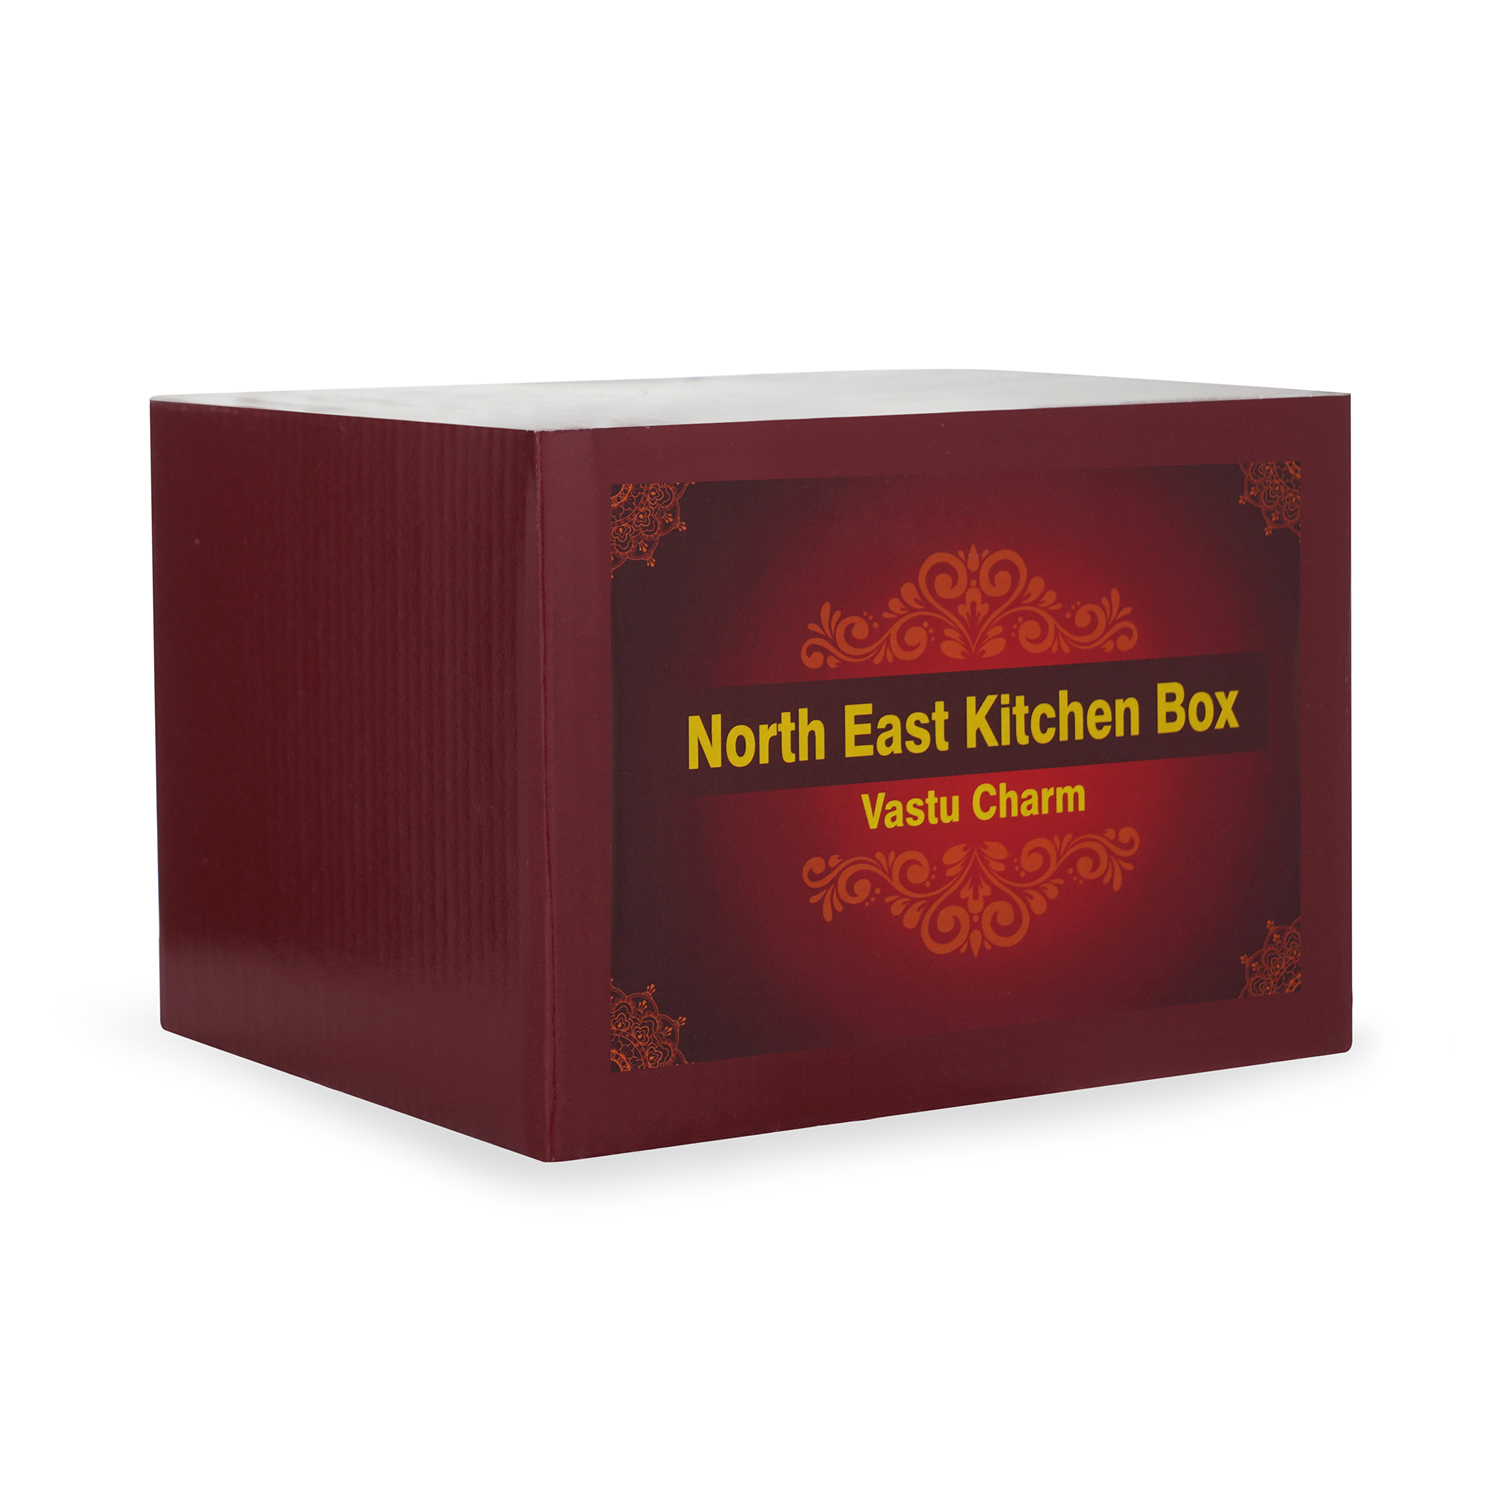 North East Kitchen Box